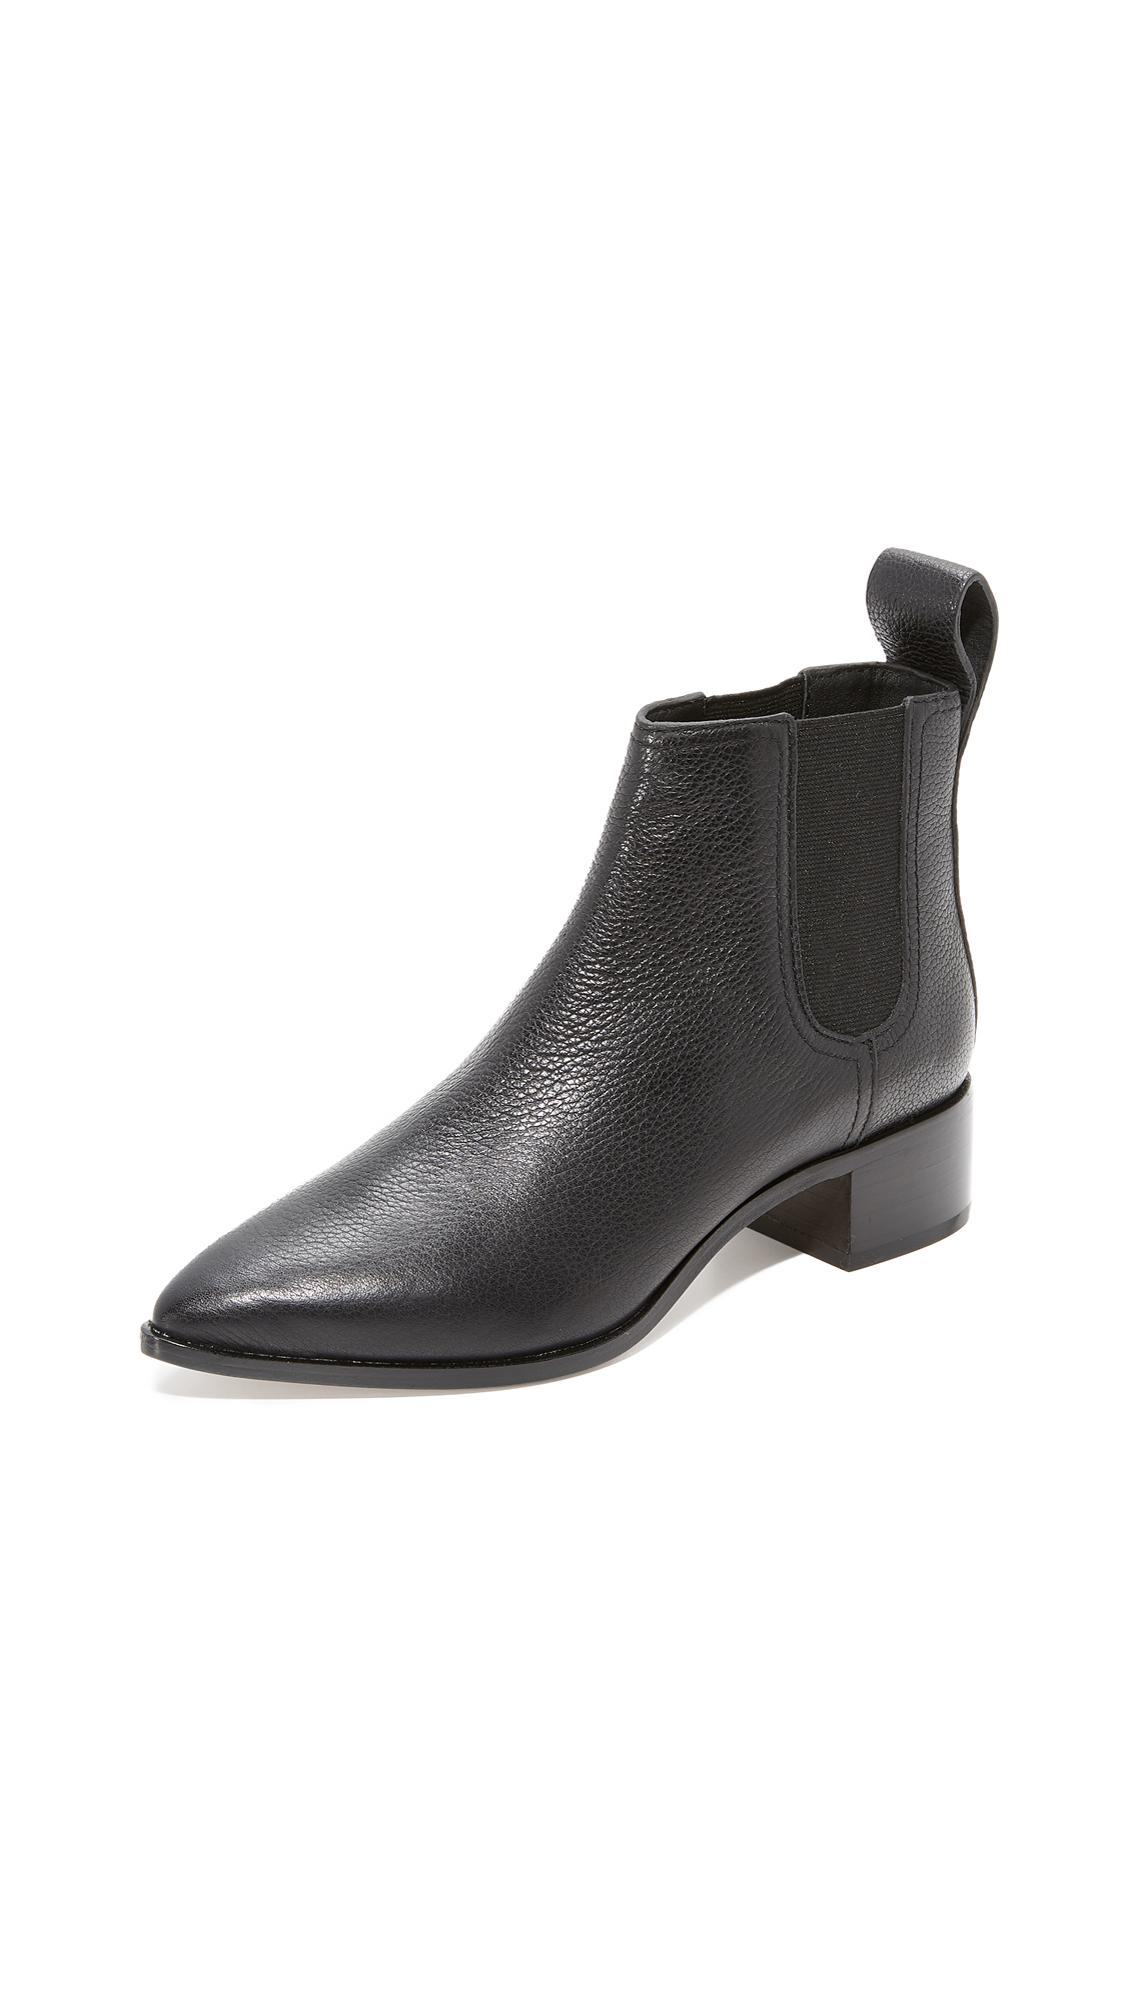 2d76a81174d46 Loeffler Randall Nellie Pointed Toe Chelsea Booties in Black - Lyst